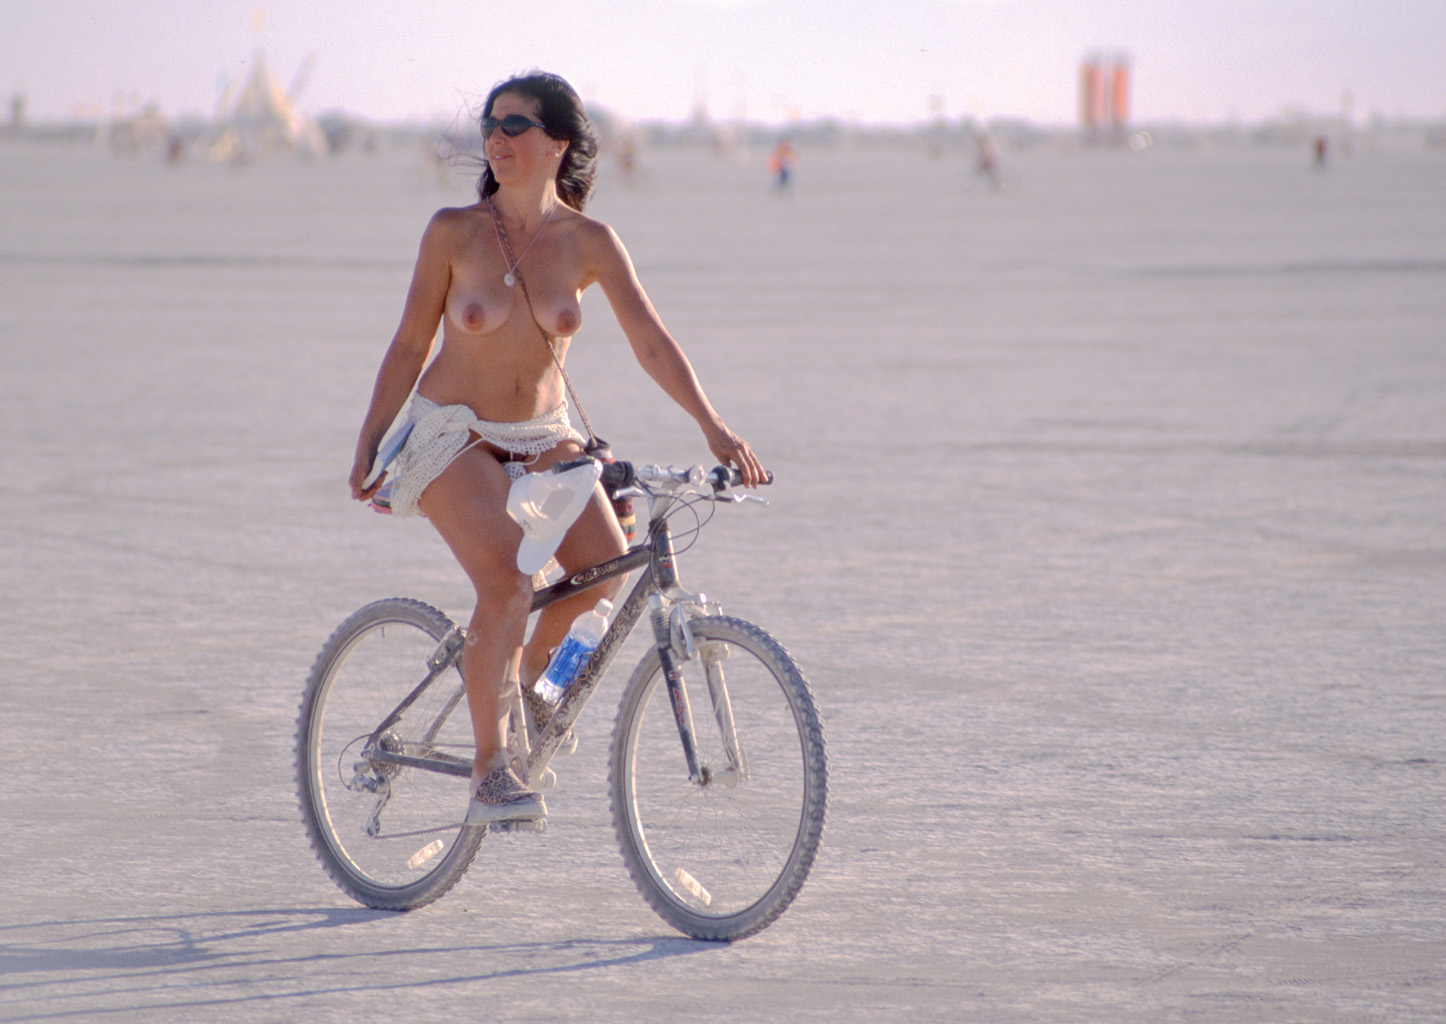 Naked bicycle girl on bike